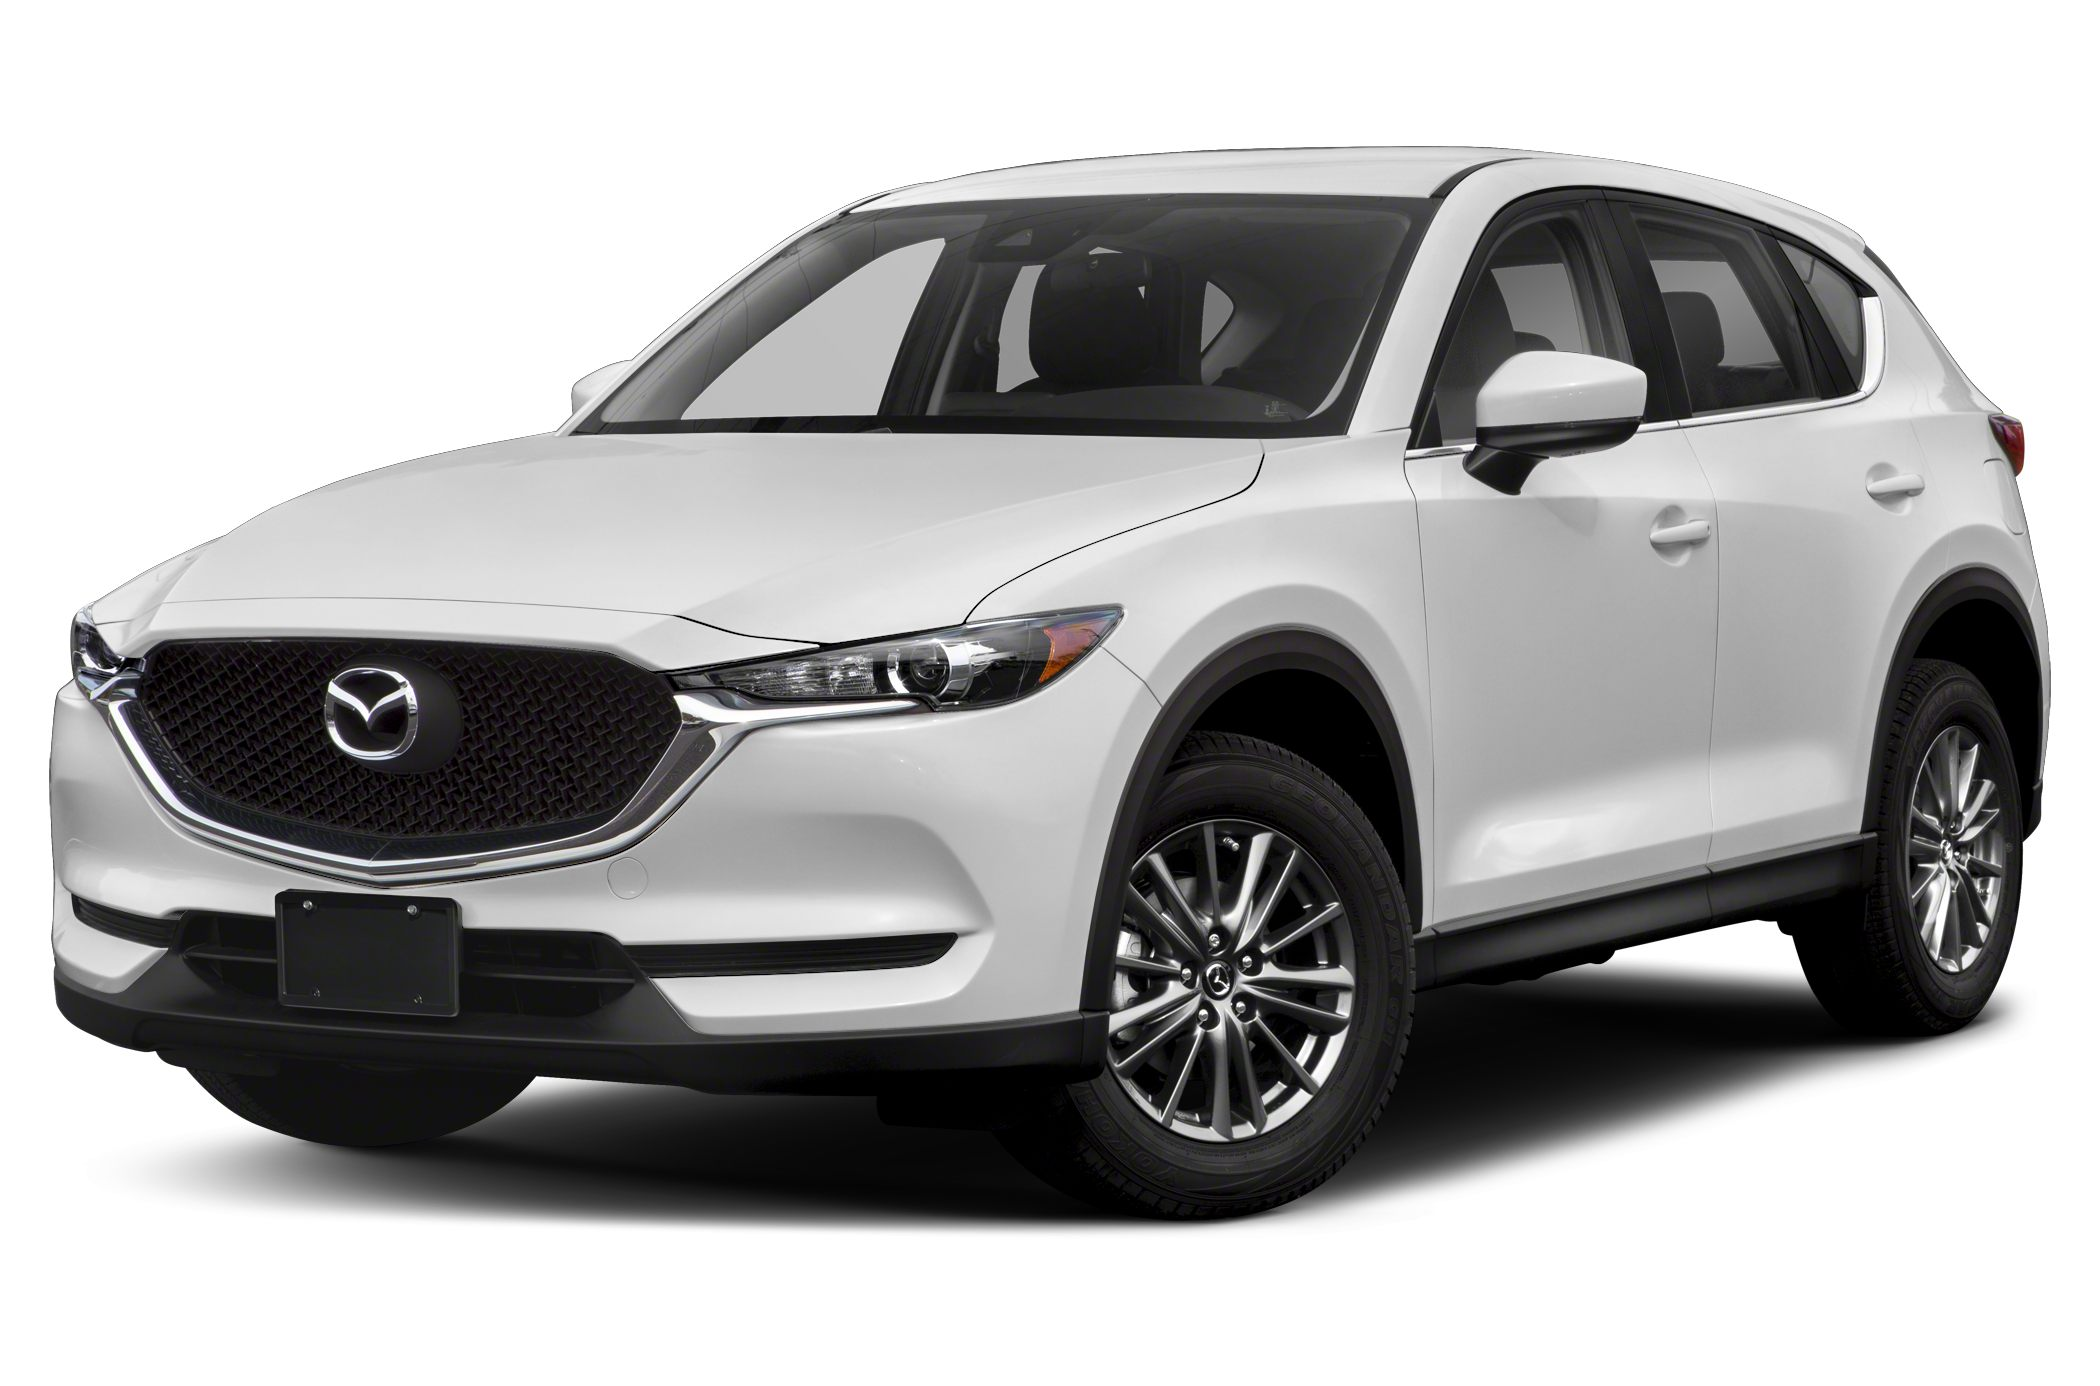 New Mazda CX-5: Big Things in Small Packages